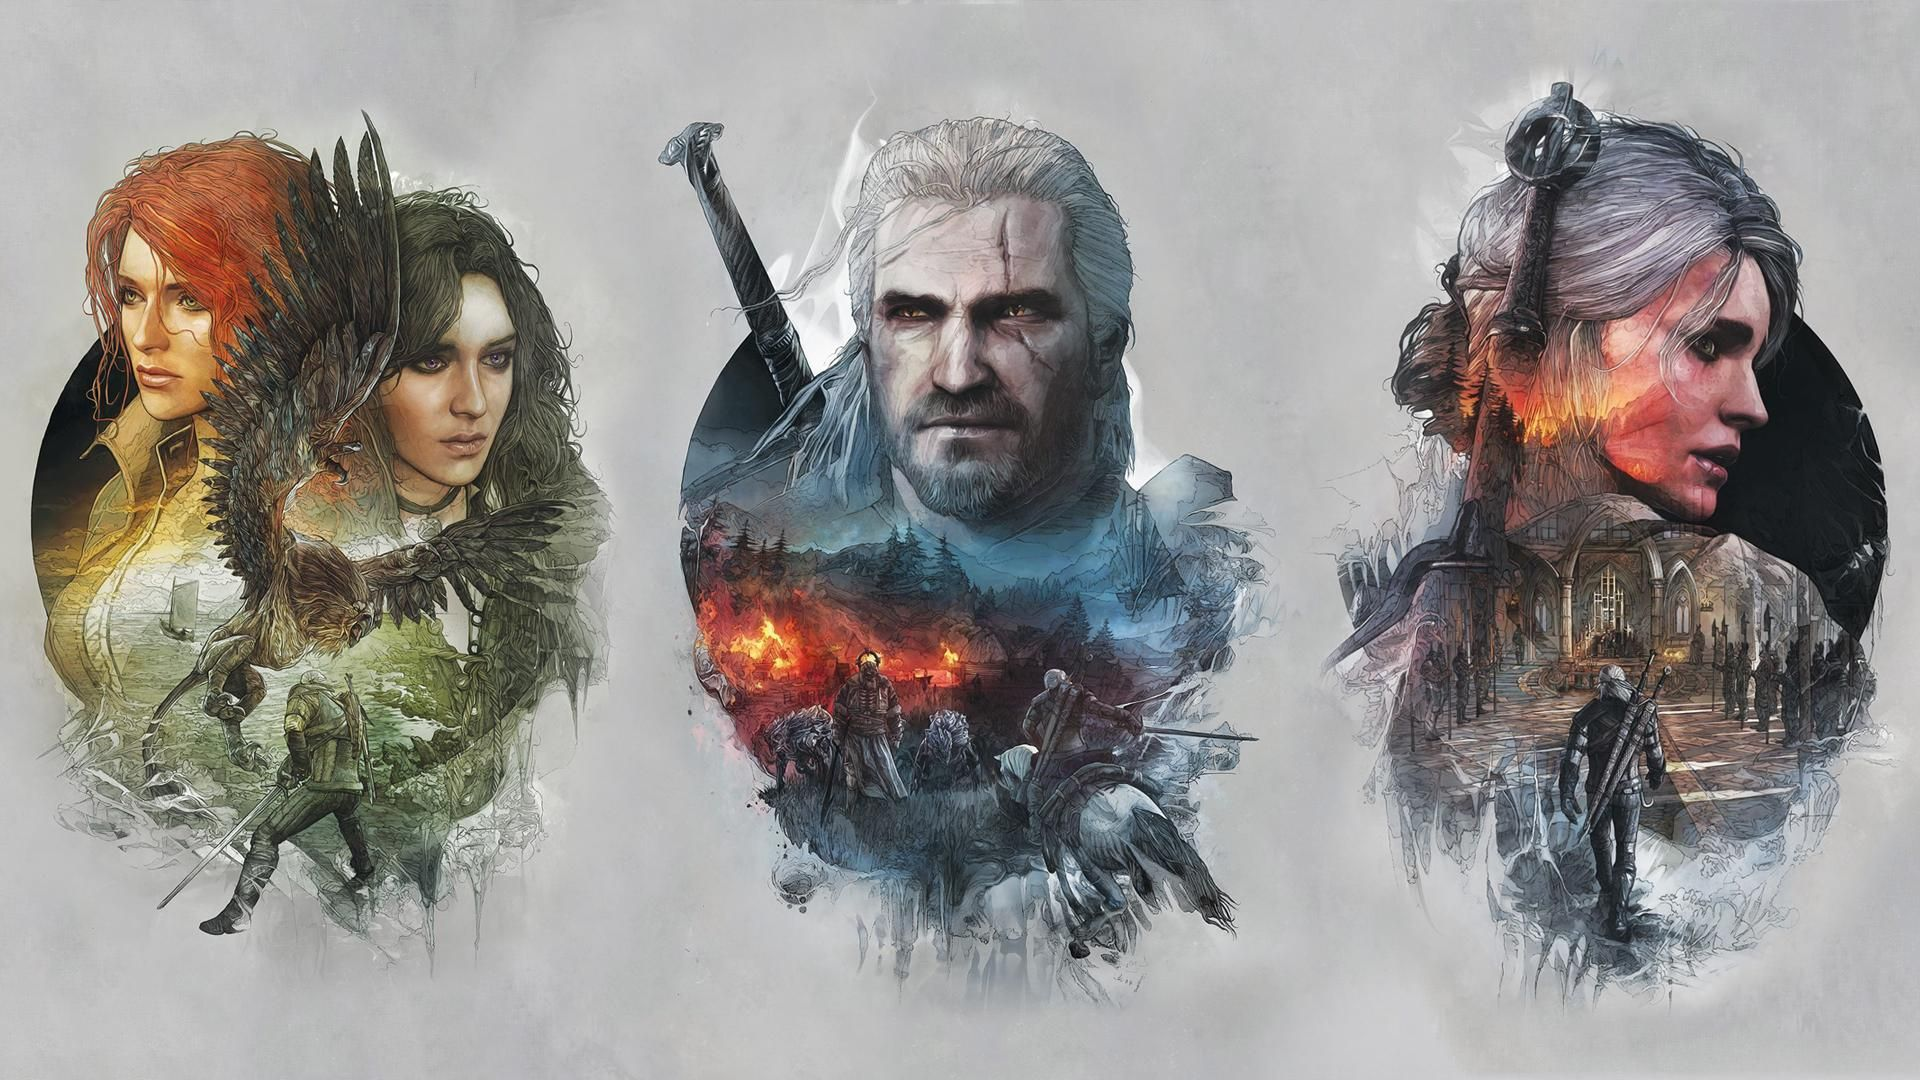 the witcher 3 Steel book Cover Дикие, Разное